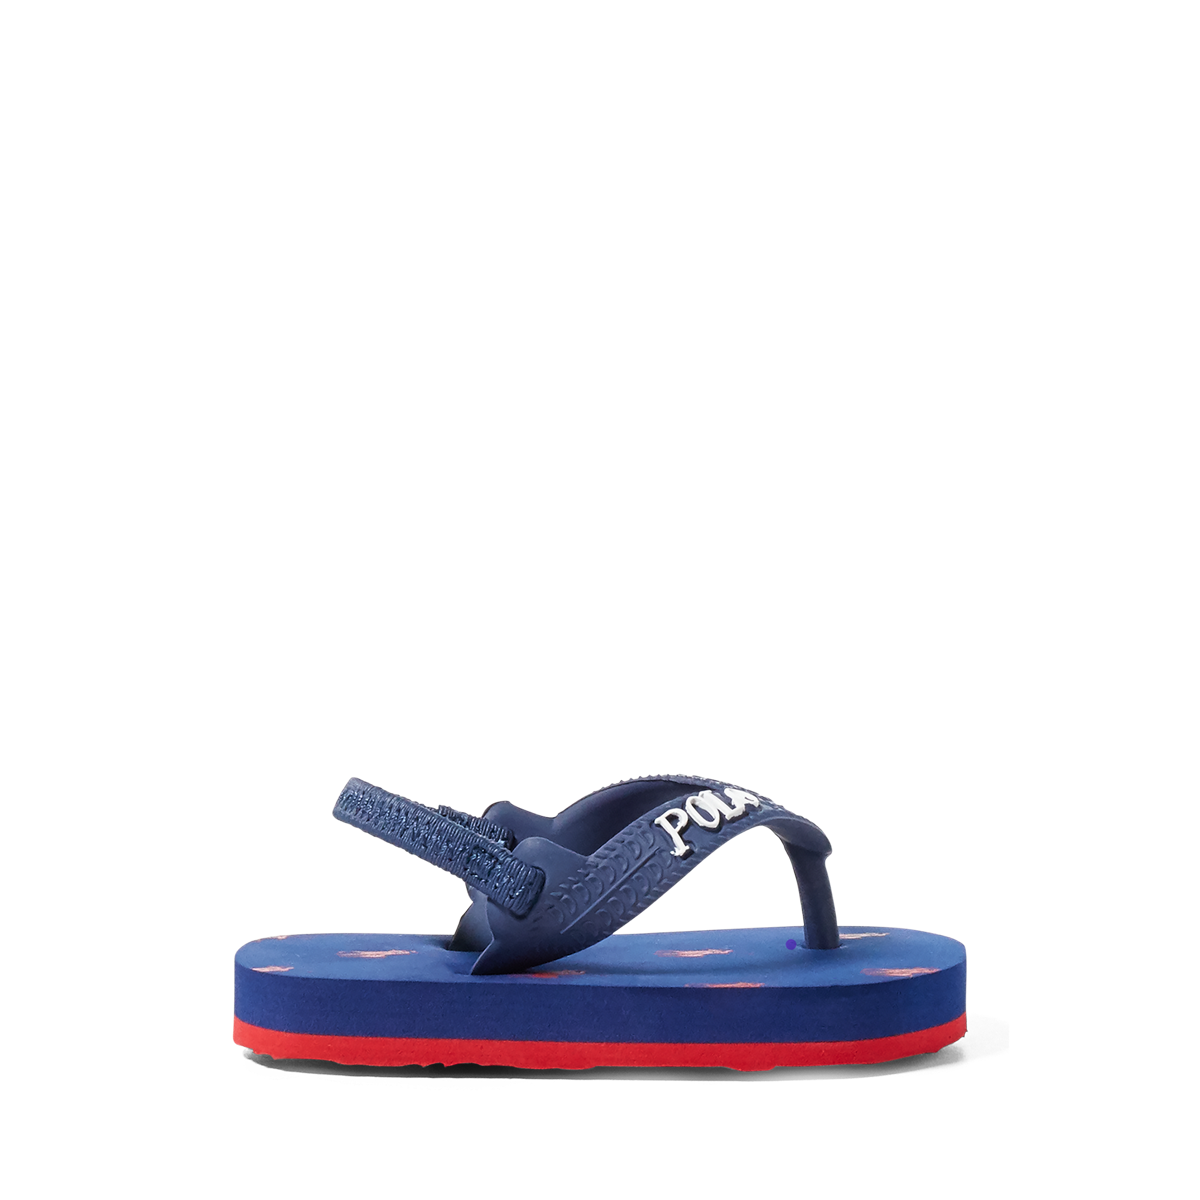 3b6bfd385 Camino Flip-Flop - Sandals Toddler (sizes 4-10)